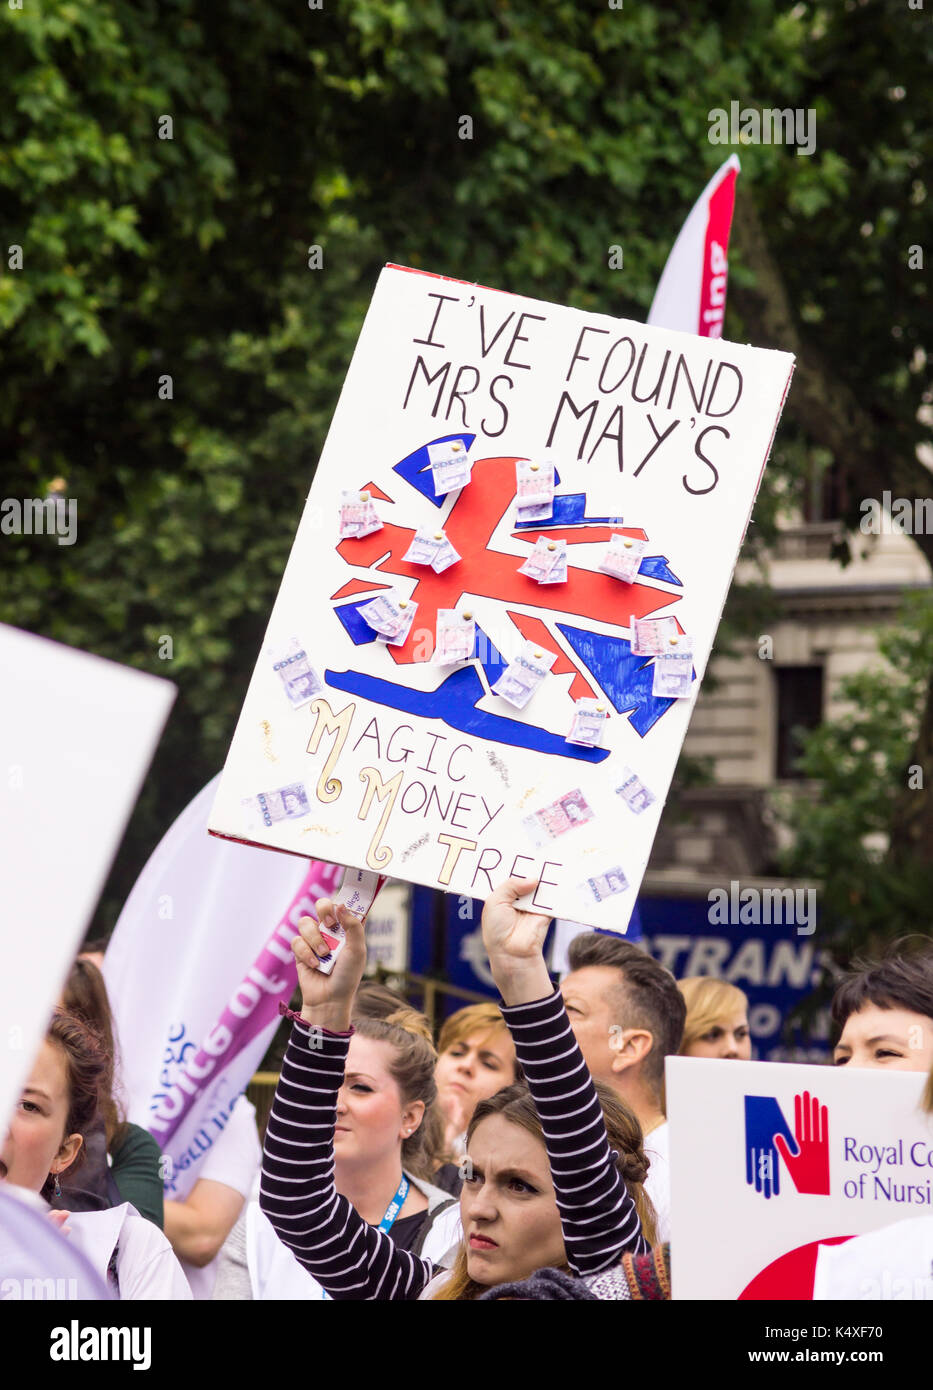 London, UK. 6th Sep, 2017. #scrapthecap nurses rally in London Bridget Catterall Alamy Live News - Stock Image